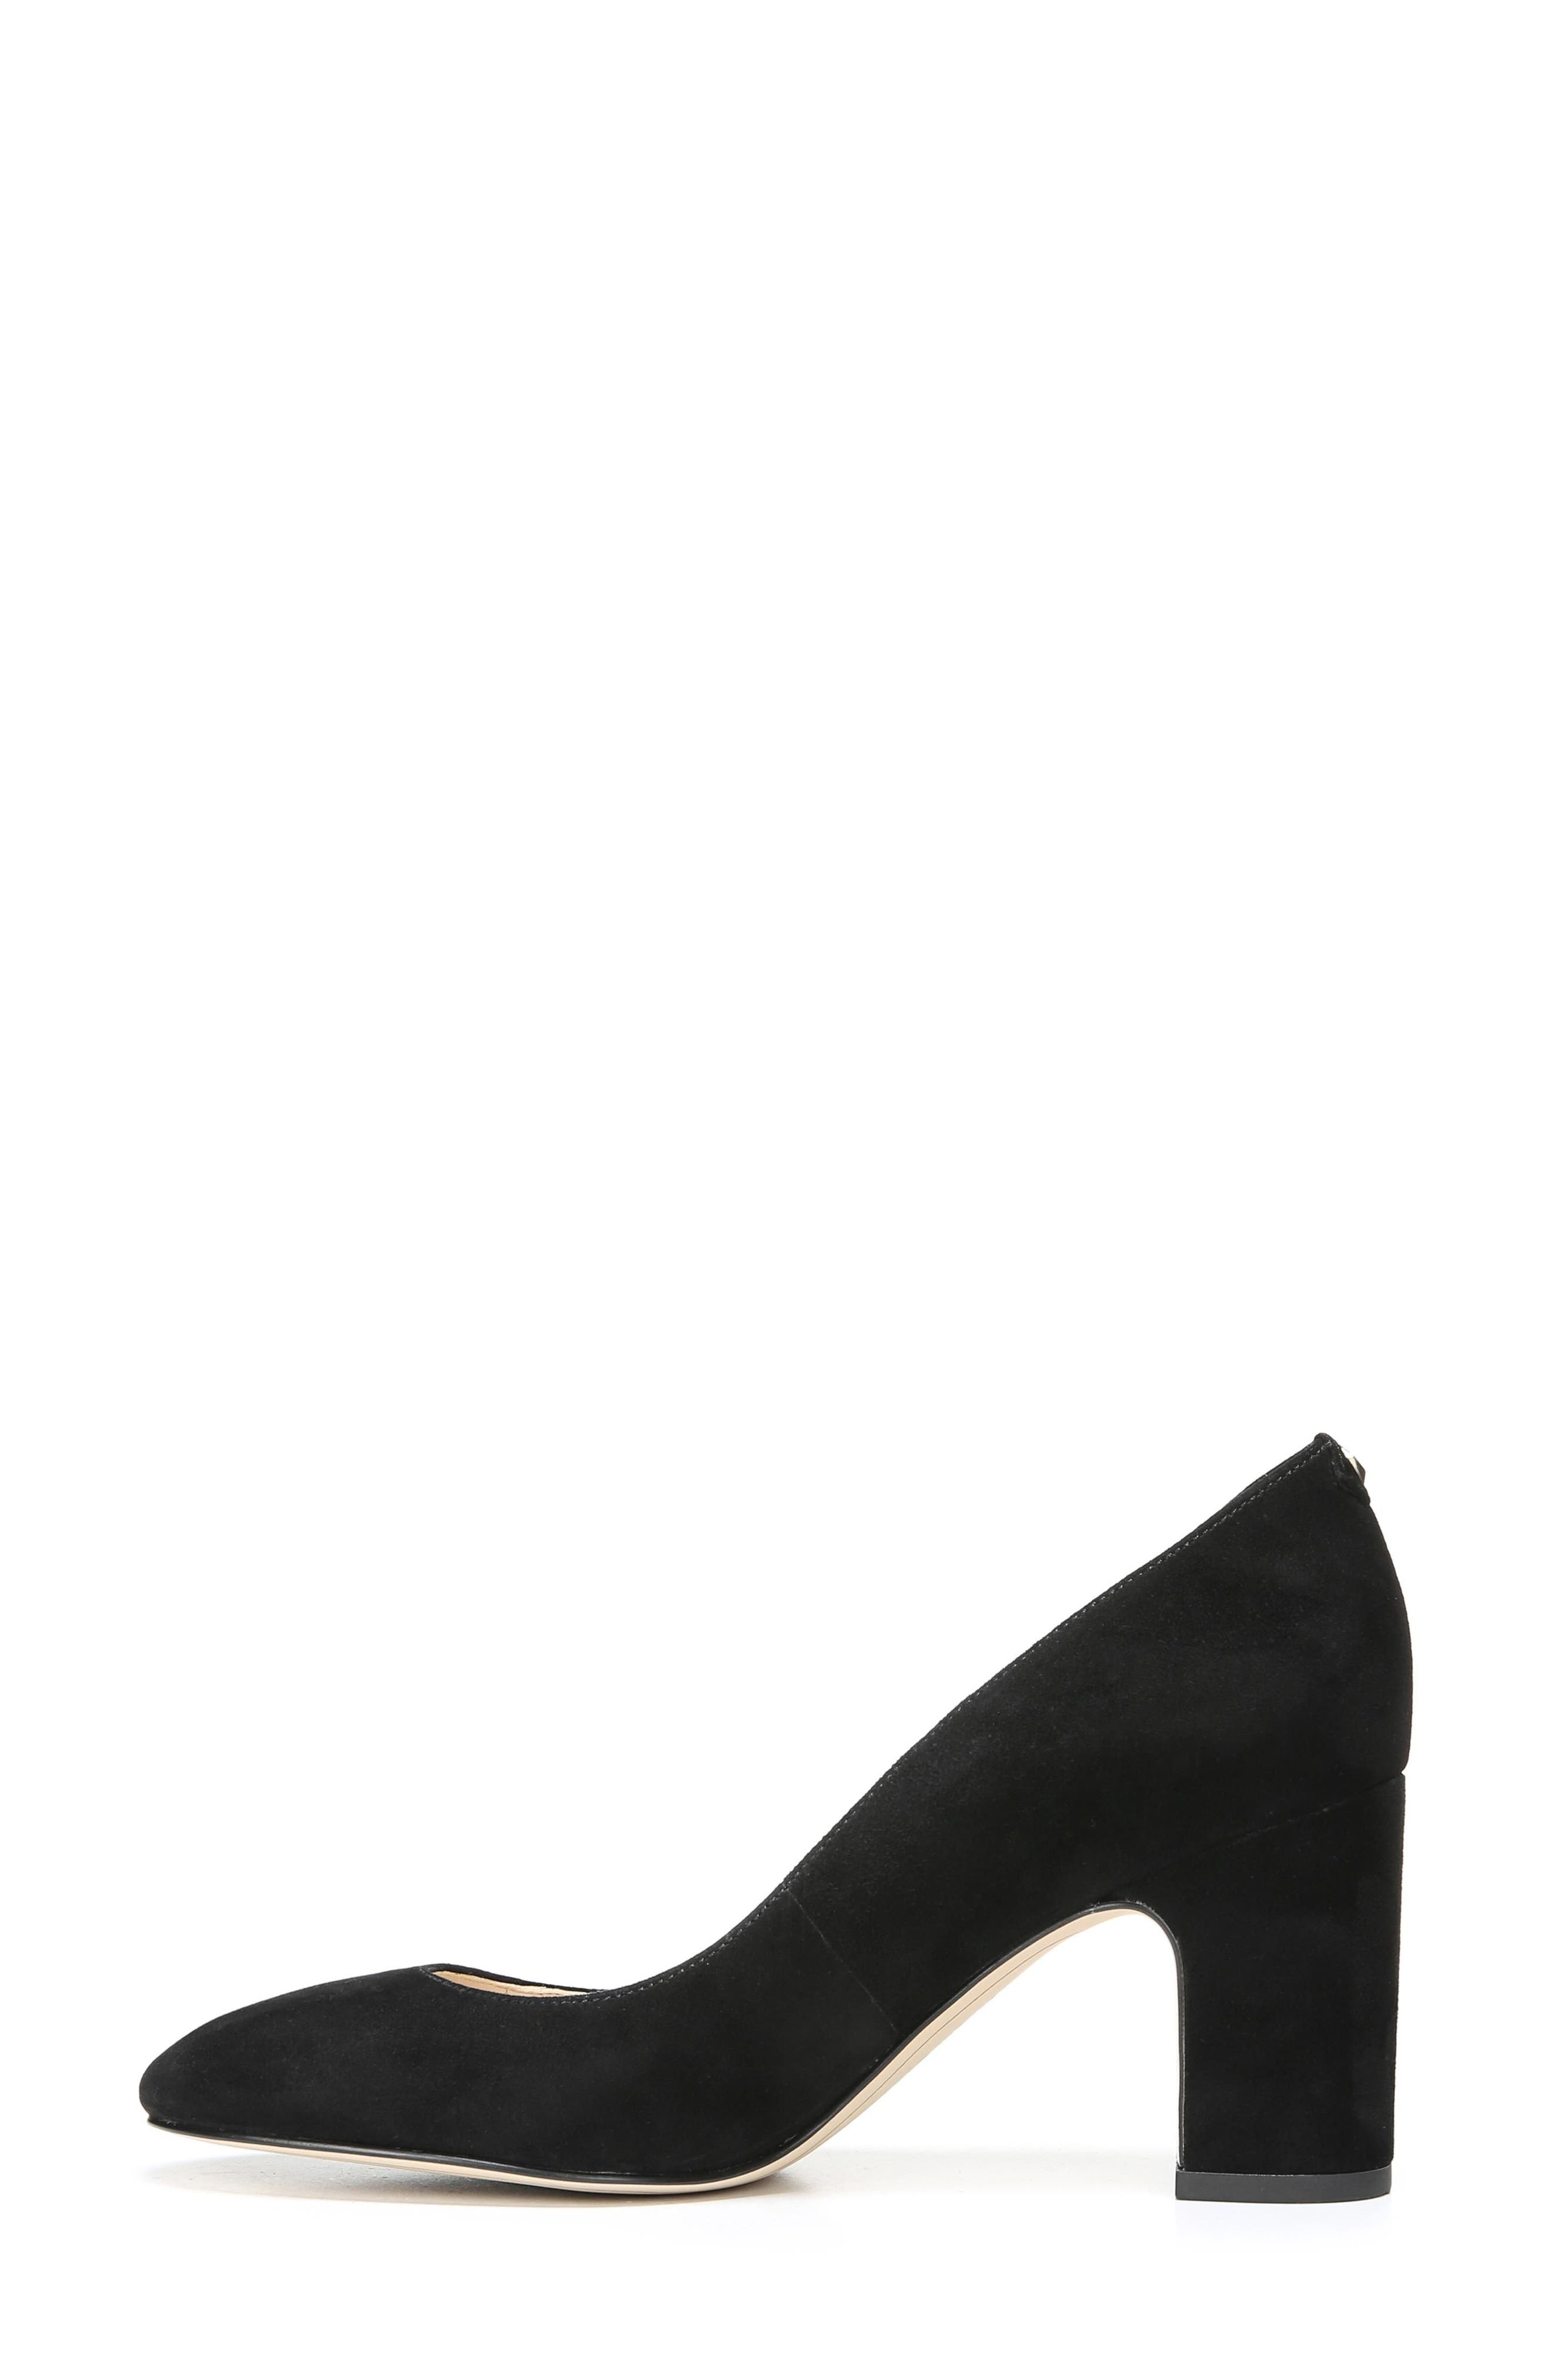 Junie Genuine Calf Hair Pump,                             Alternate thumbnail 3, color,                             001